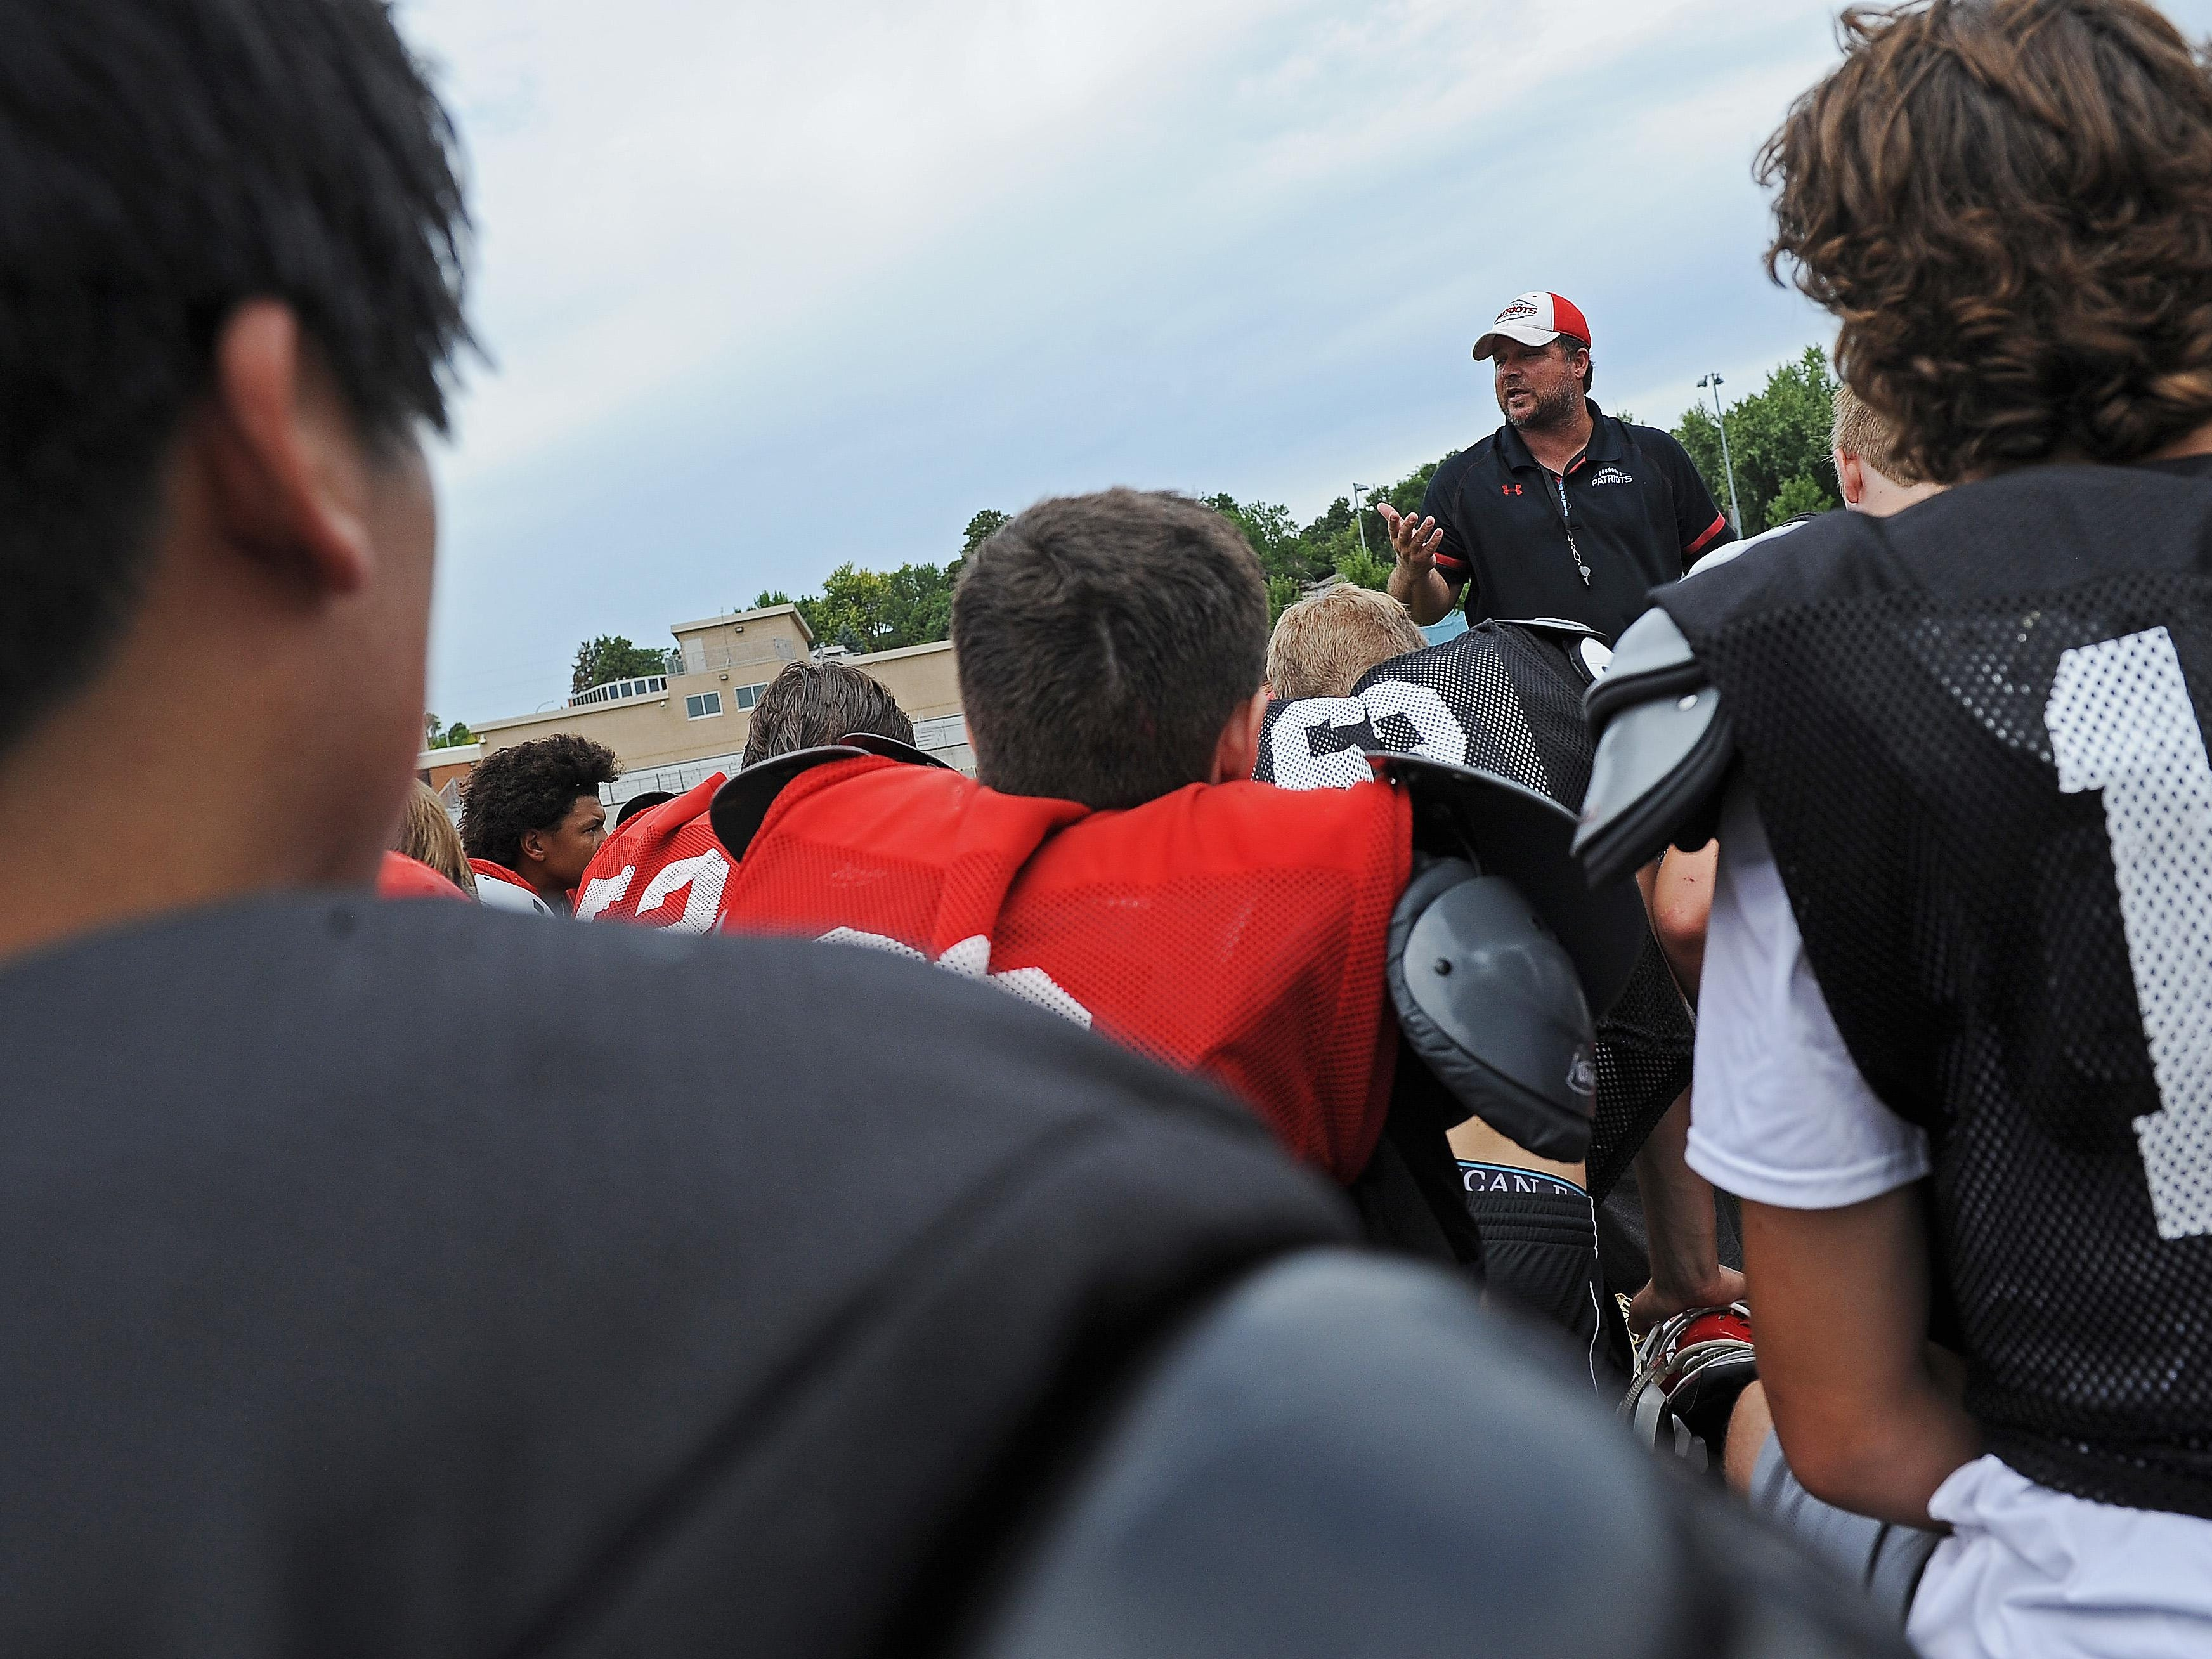 Lincoln High School football coach Aaron Beavers speaks to his team during a Lincoln High School football practice Thursday, Aug. 11, 2016, at Lincoln High School in Sioux Falls.